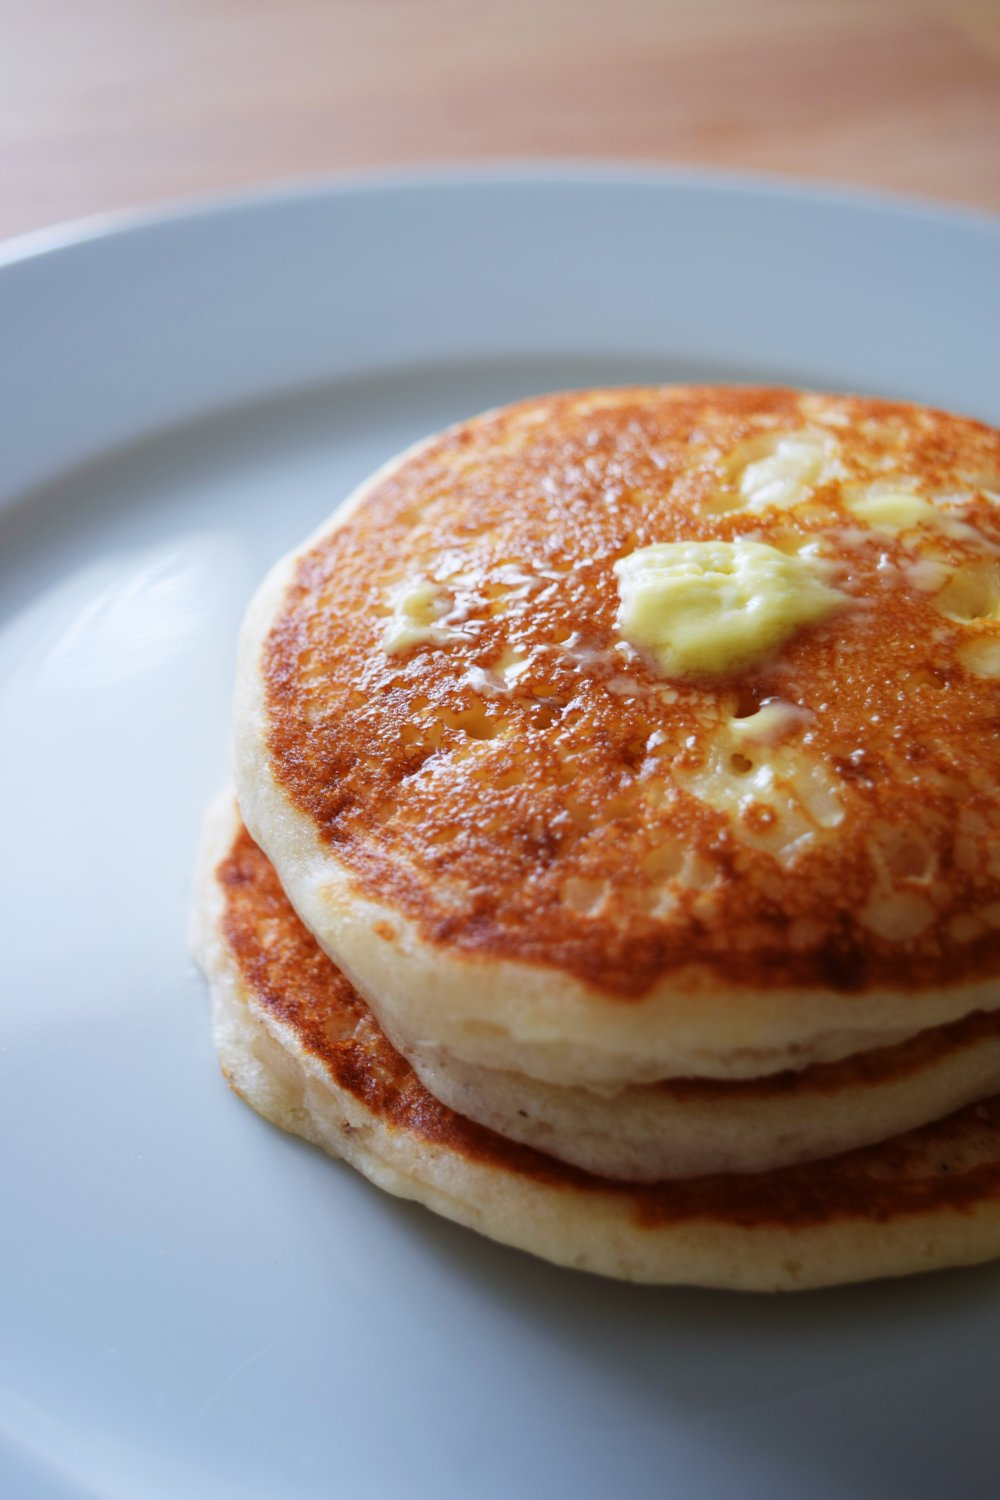 Homemade palm-oil free butter on pancakes